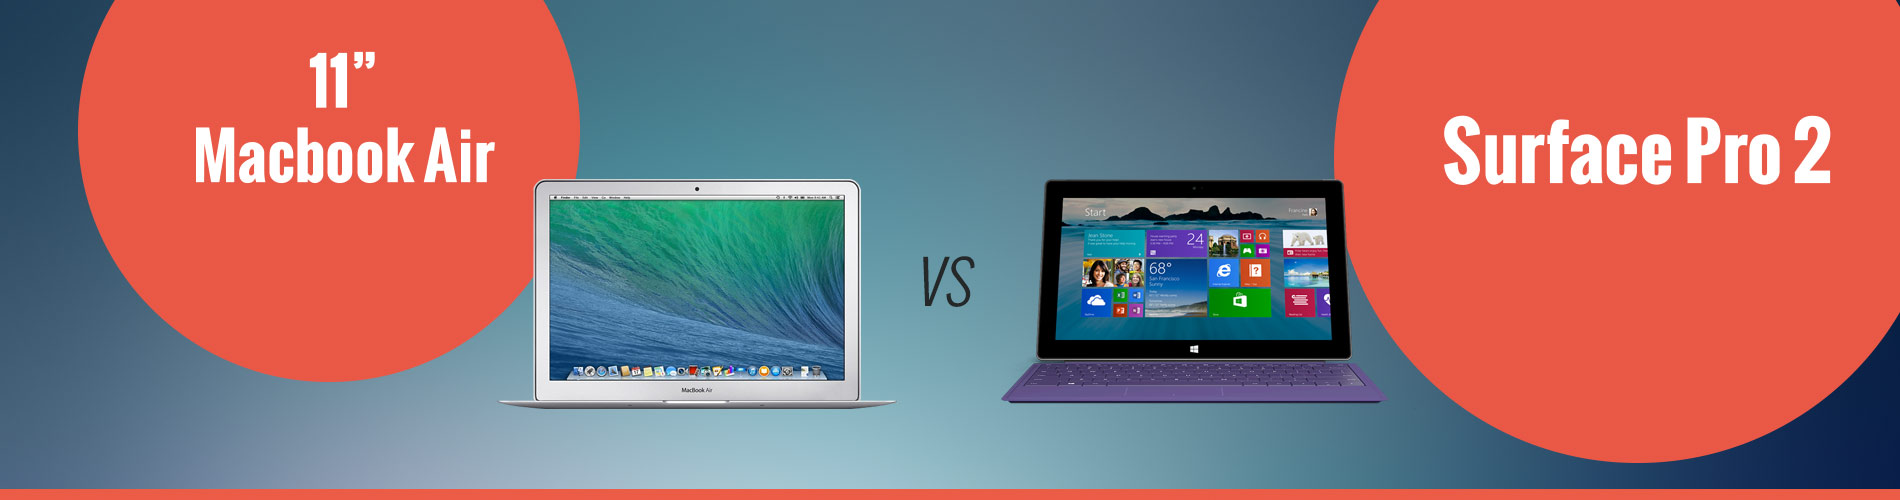 Apple 11in MacBook Air vs Microsoft Surface Pro 2